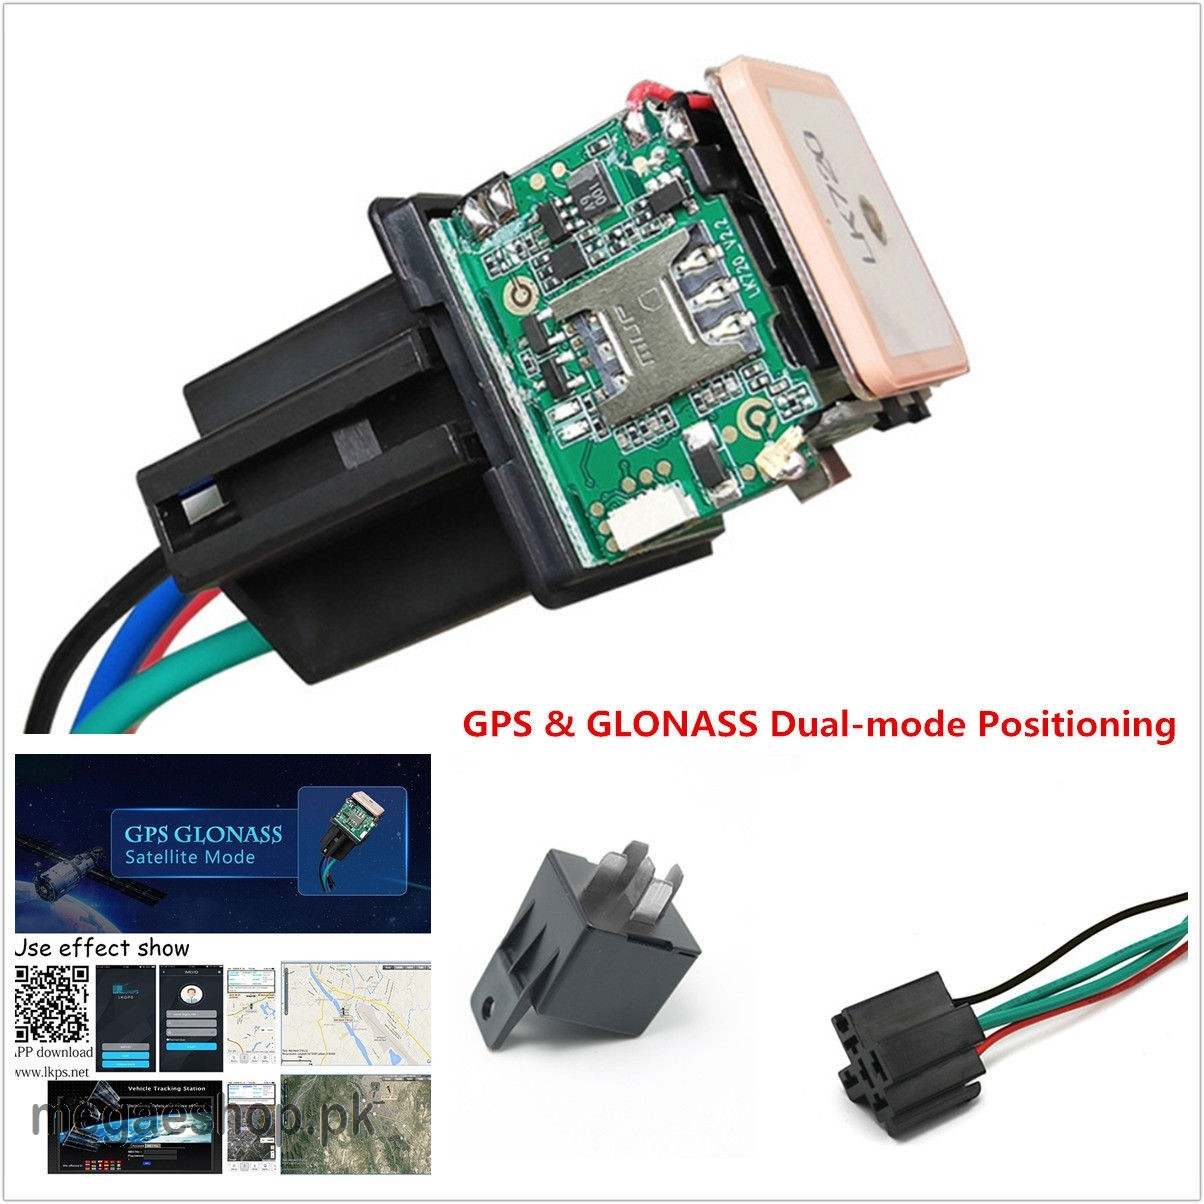 Car Tracking GPS Tracker Device geo fencing Anti-theft Monitoring Cut off  oil power System APP